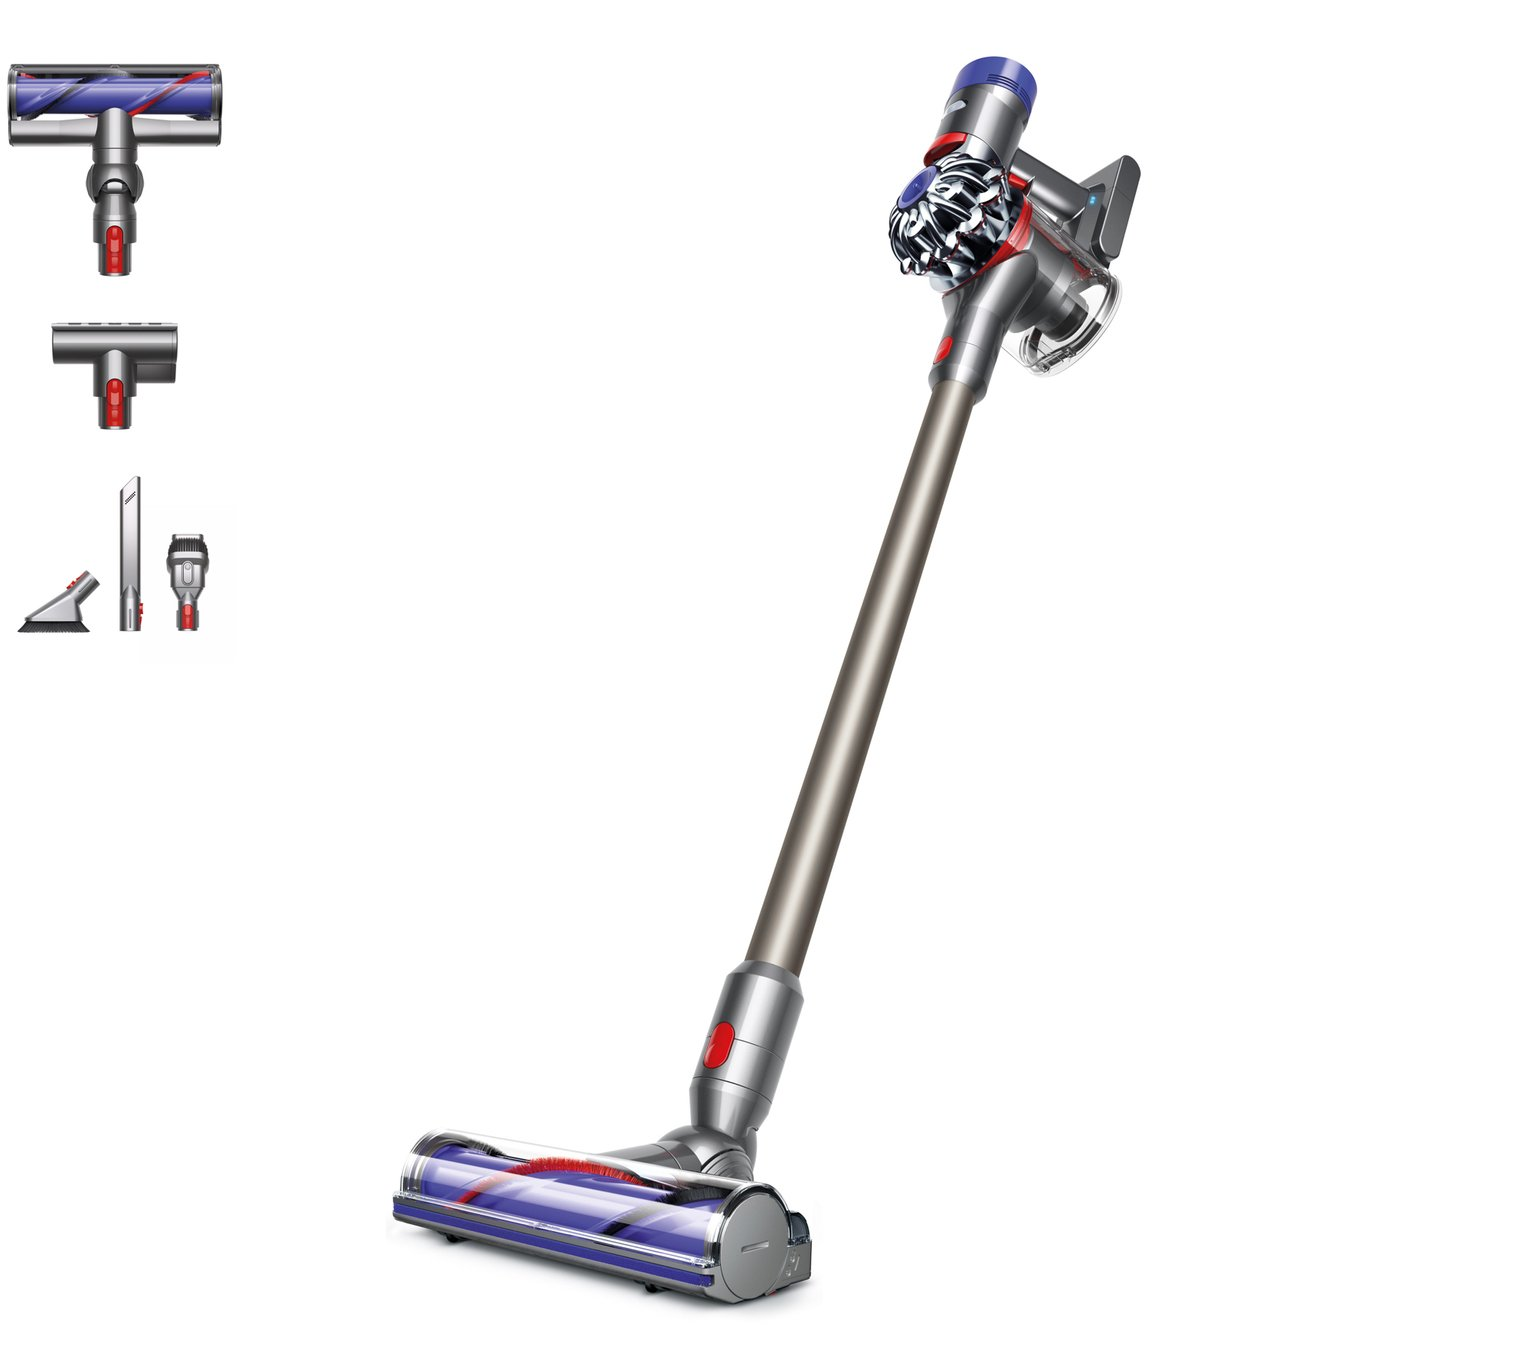 Dyson - V8 Animal - Cordless - Handstick Vacuum Cleaner from Dyson